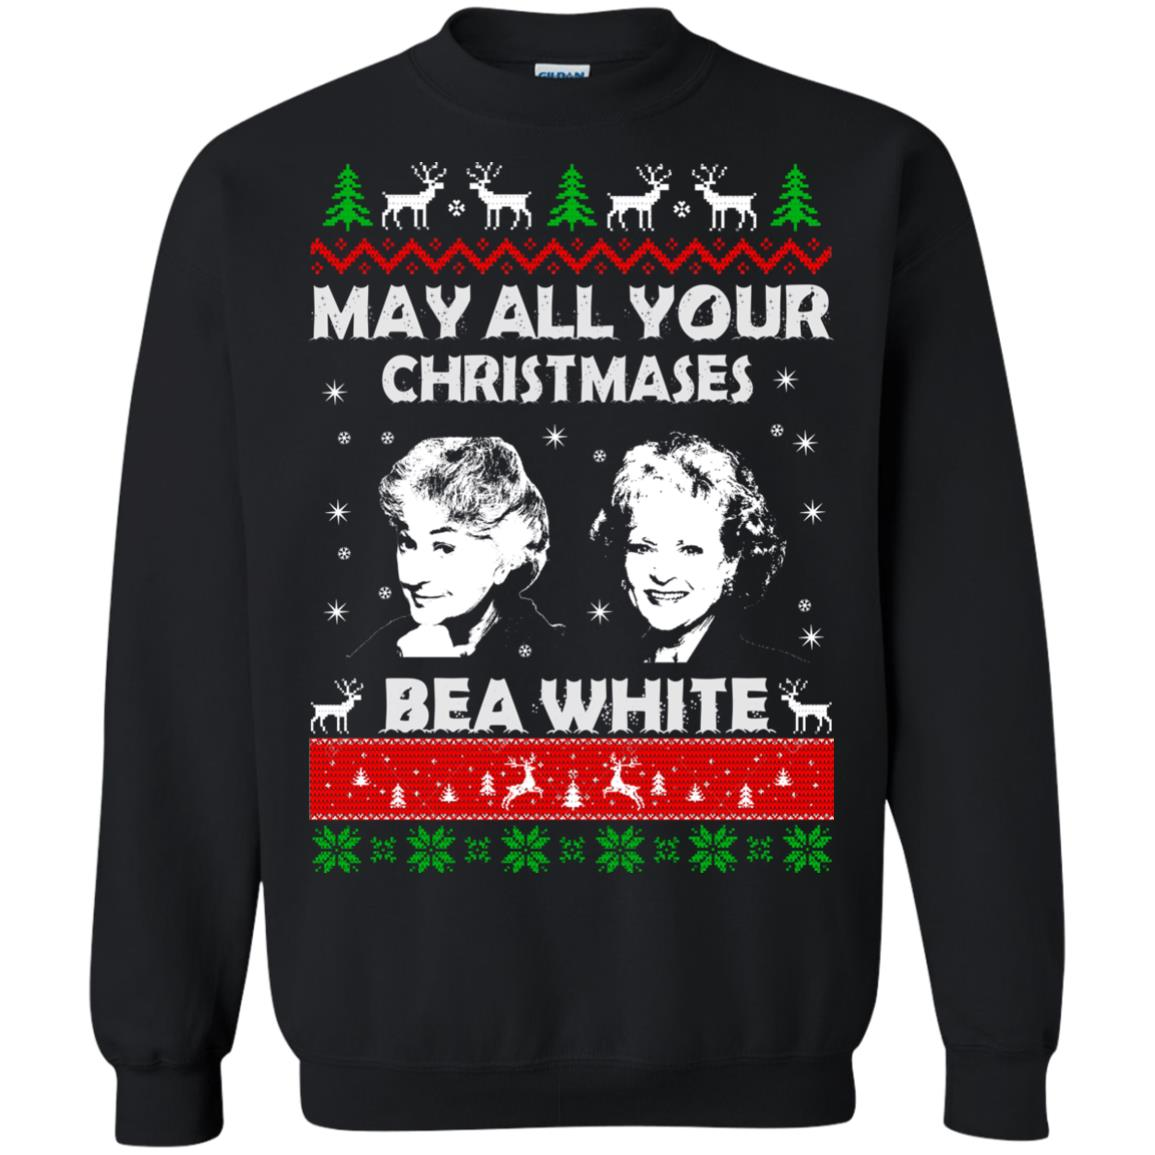 image 729 - May all your Christmases Bea White Ugly Sweater, Hoodie